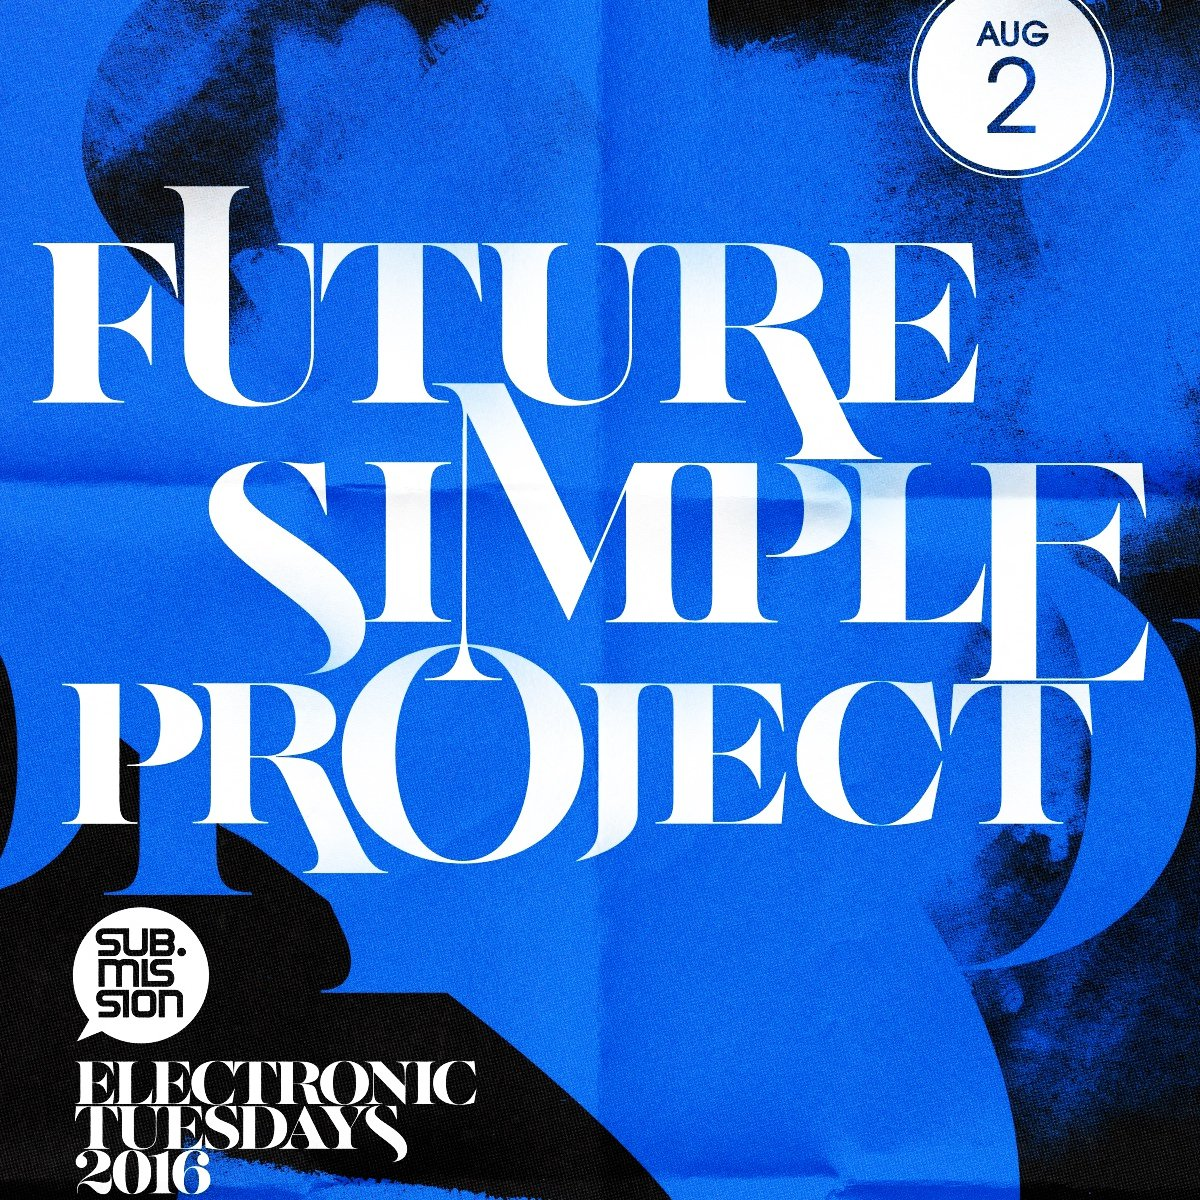 Future Simple Project & Dillard @ Cervantes Electronic Tuesdays (Denver) Aug. 2nd